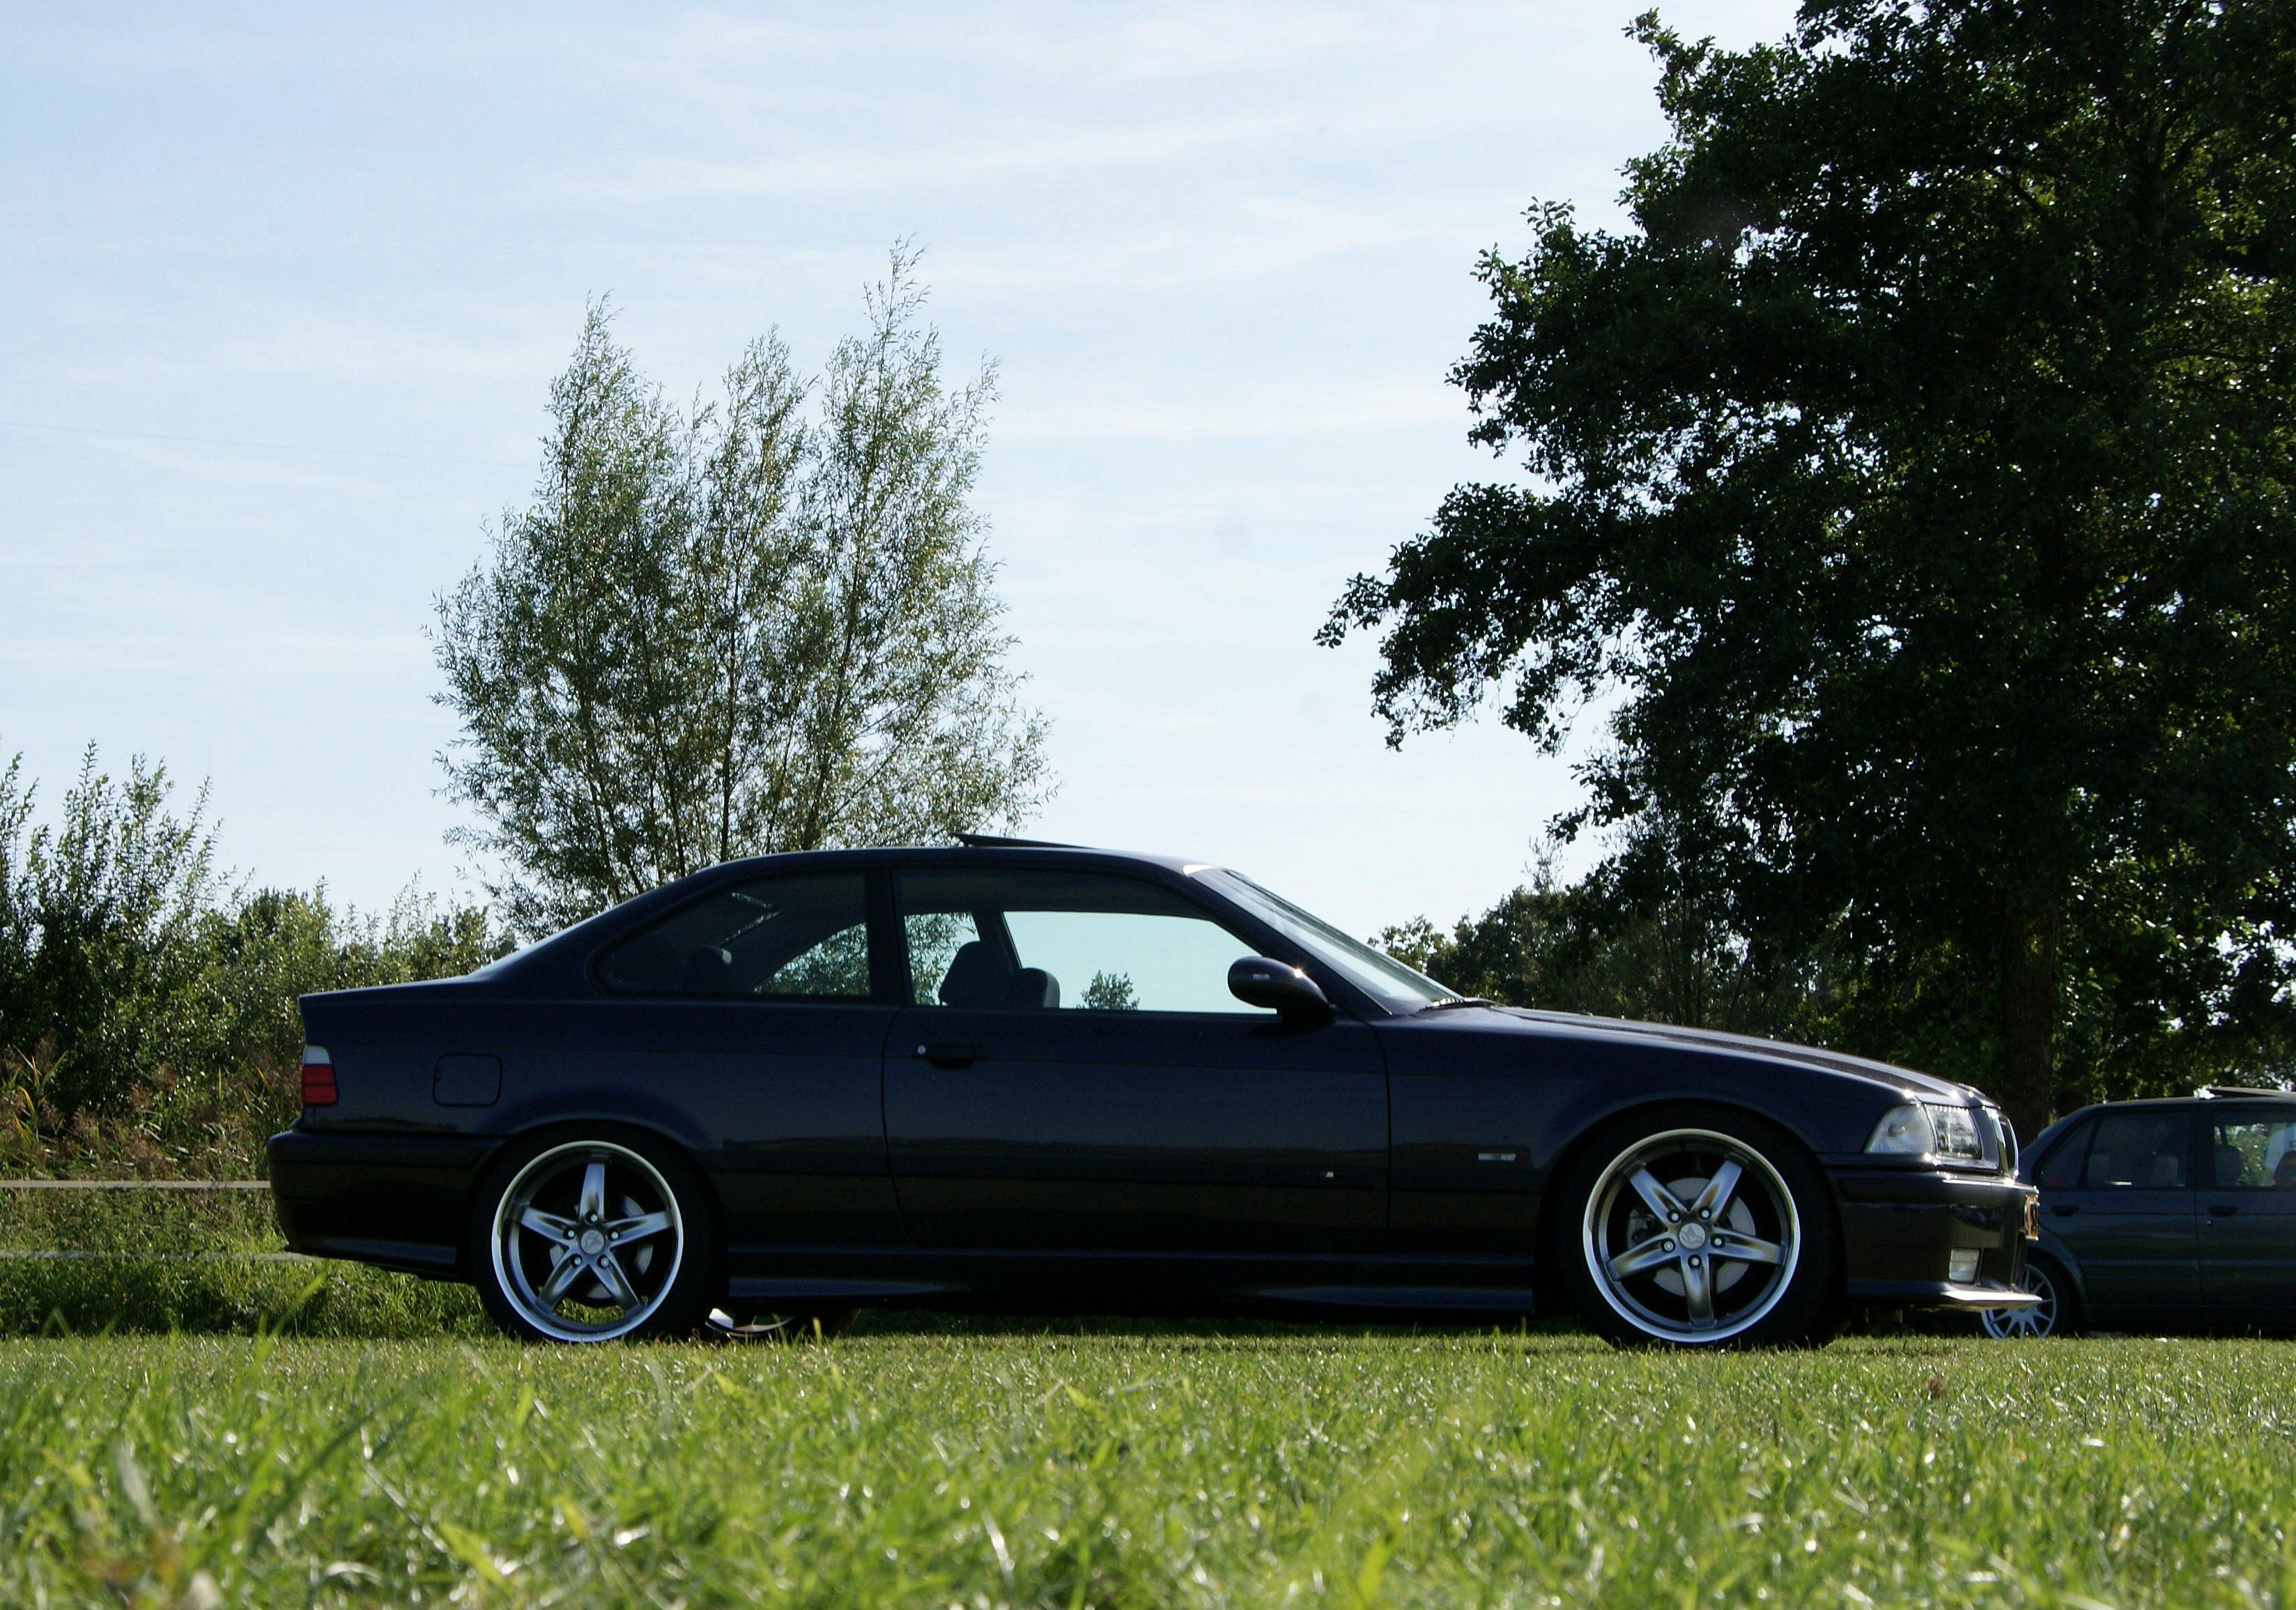 E36 bmw 328i coupe sport in madeira violet with 18inch hamann alloys